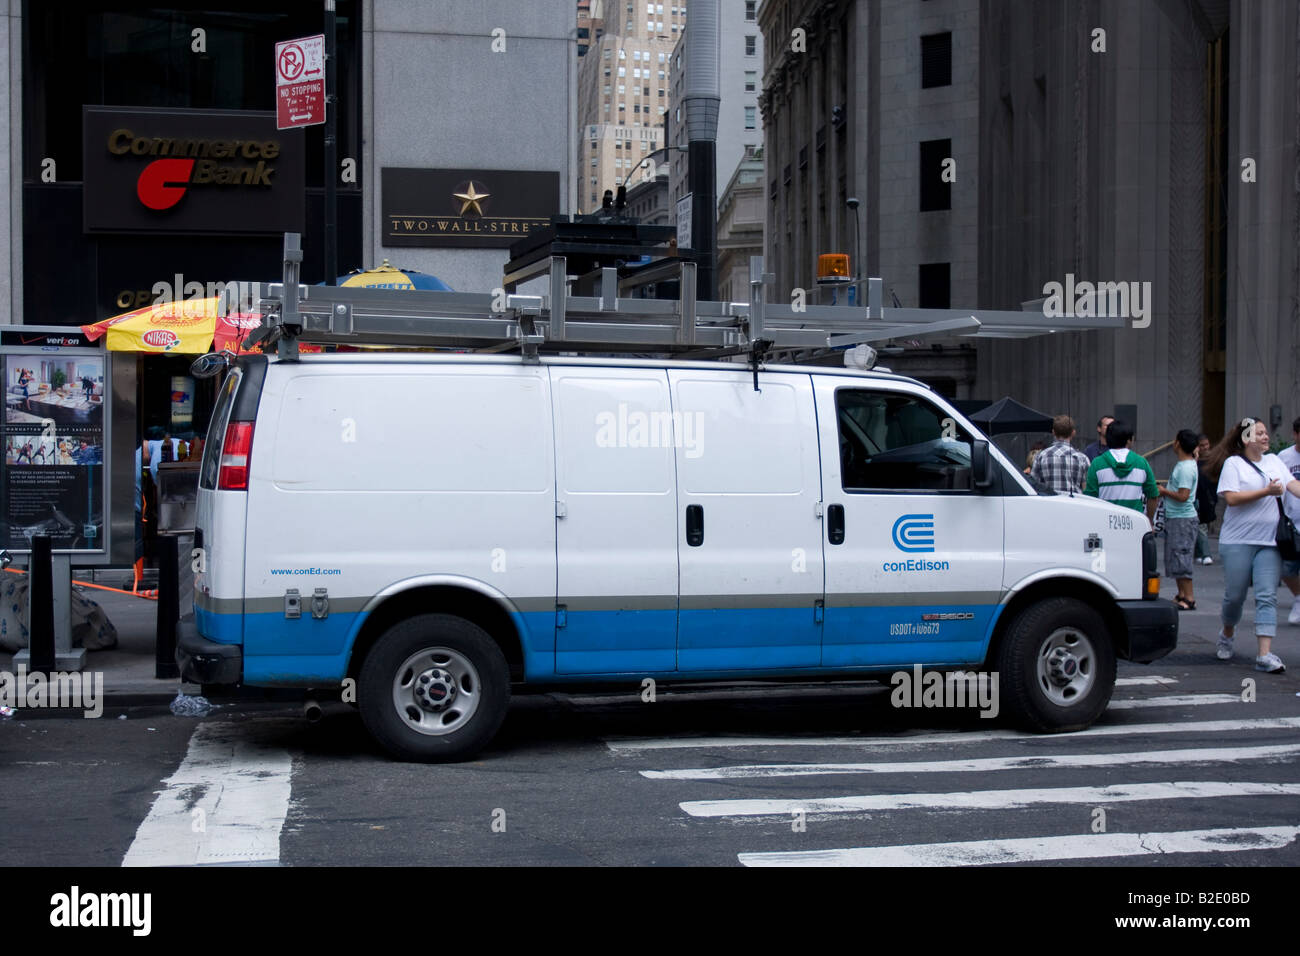 A Con Ed truck parked on Broadway in lower Manhattan, NY. - Stock Image